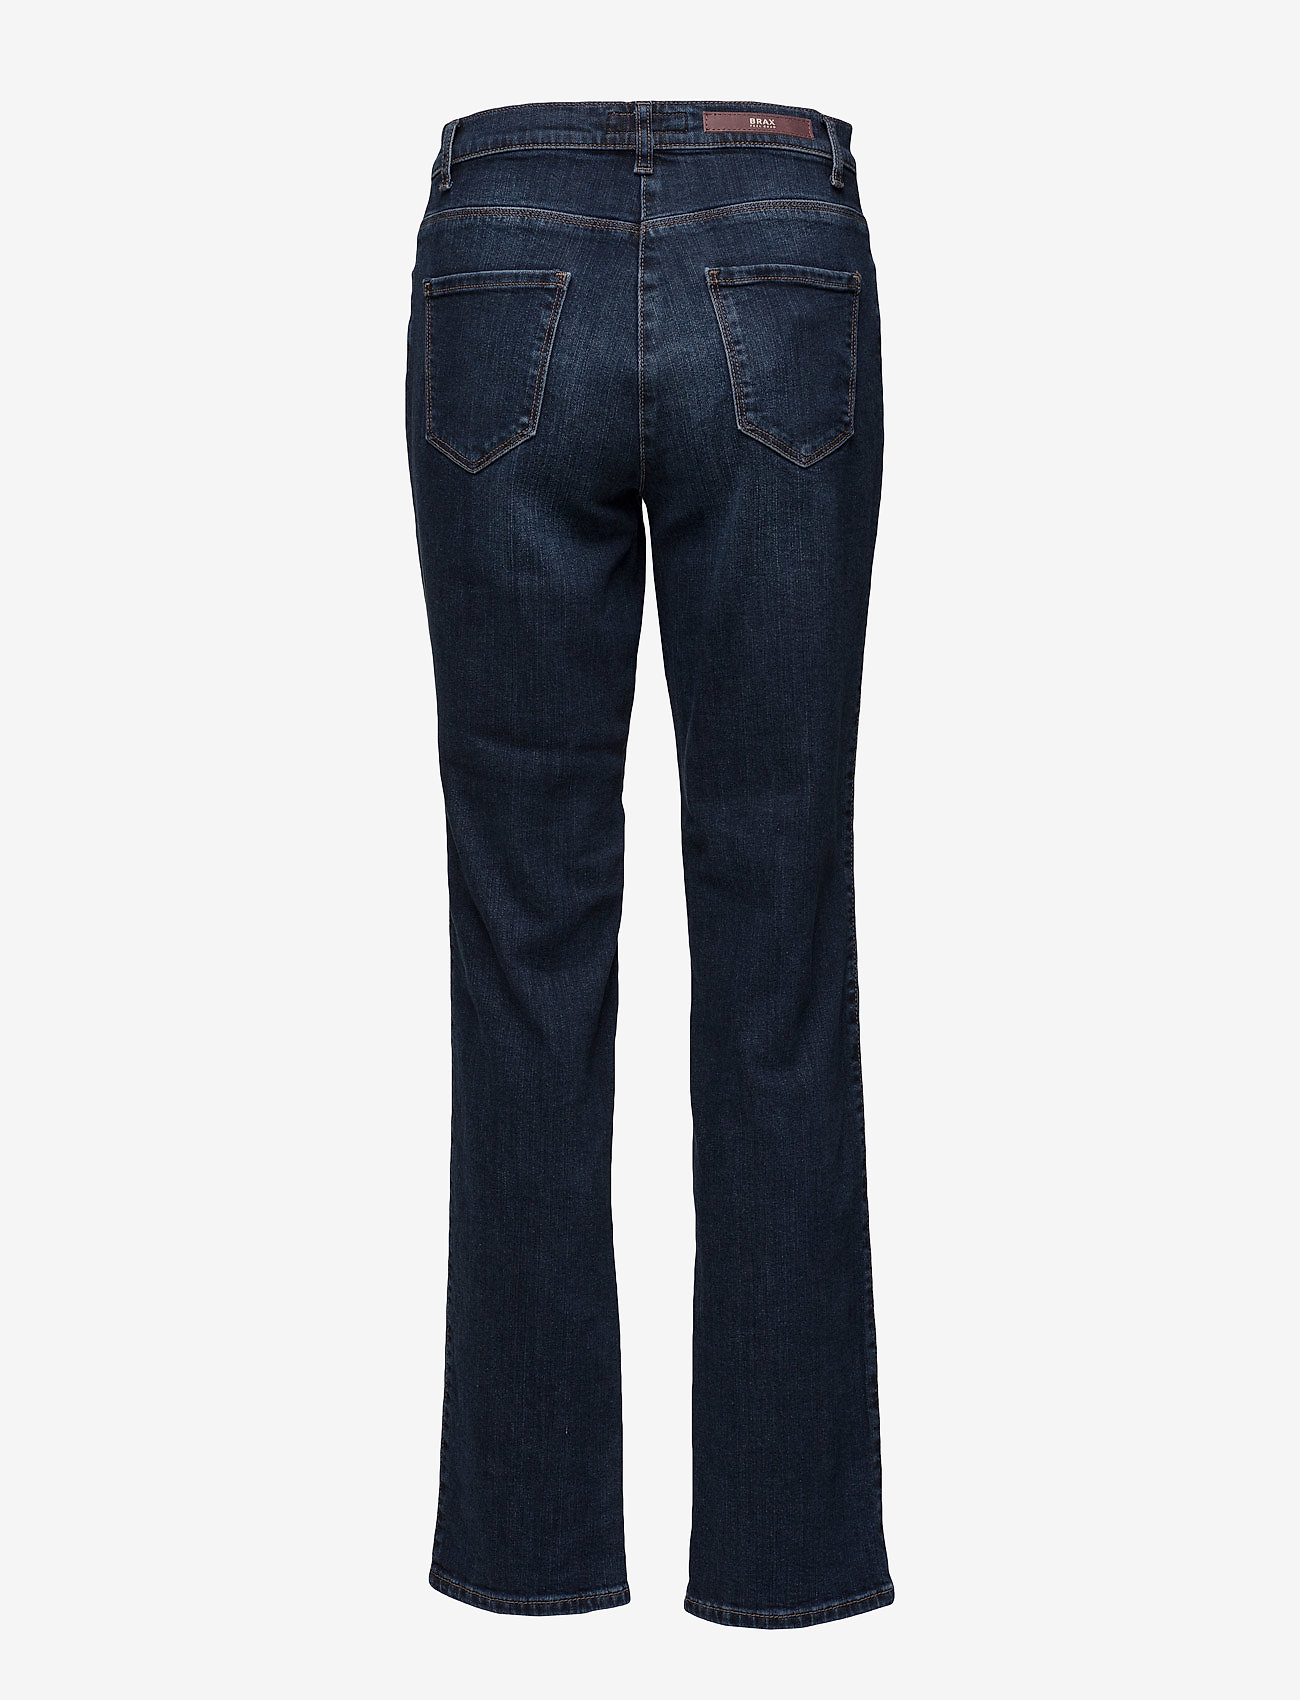 BRAX - CAROLA - straight jeans - used regular blue - 1